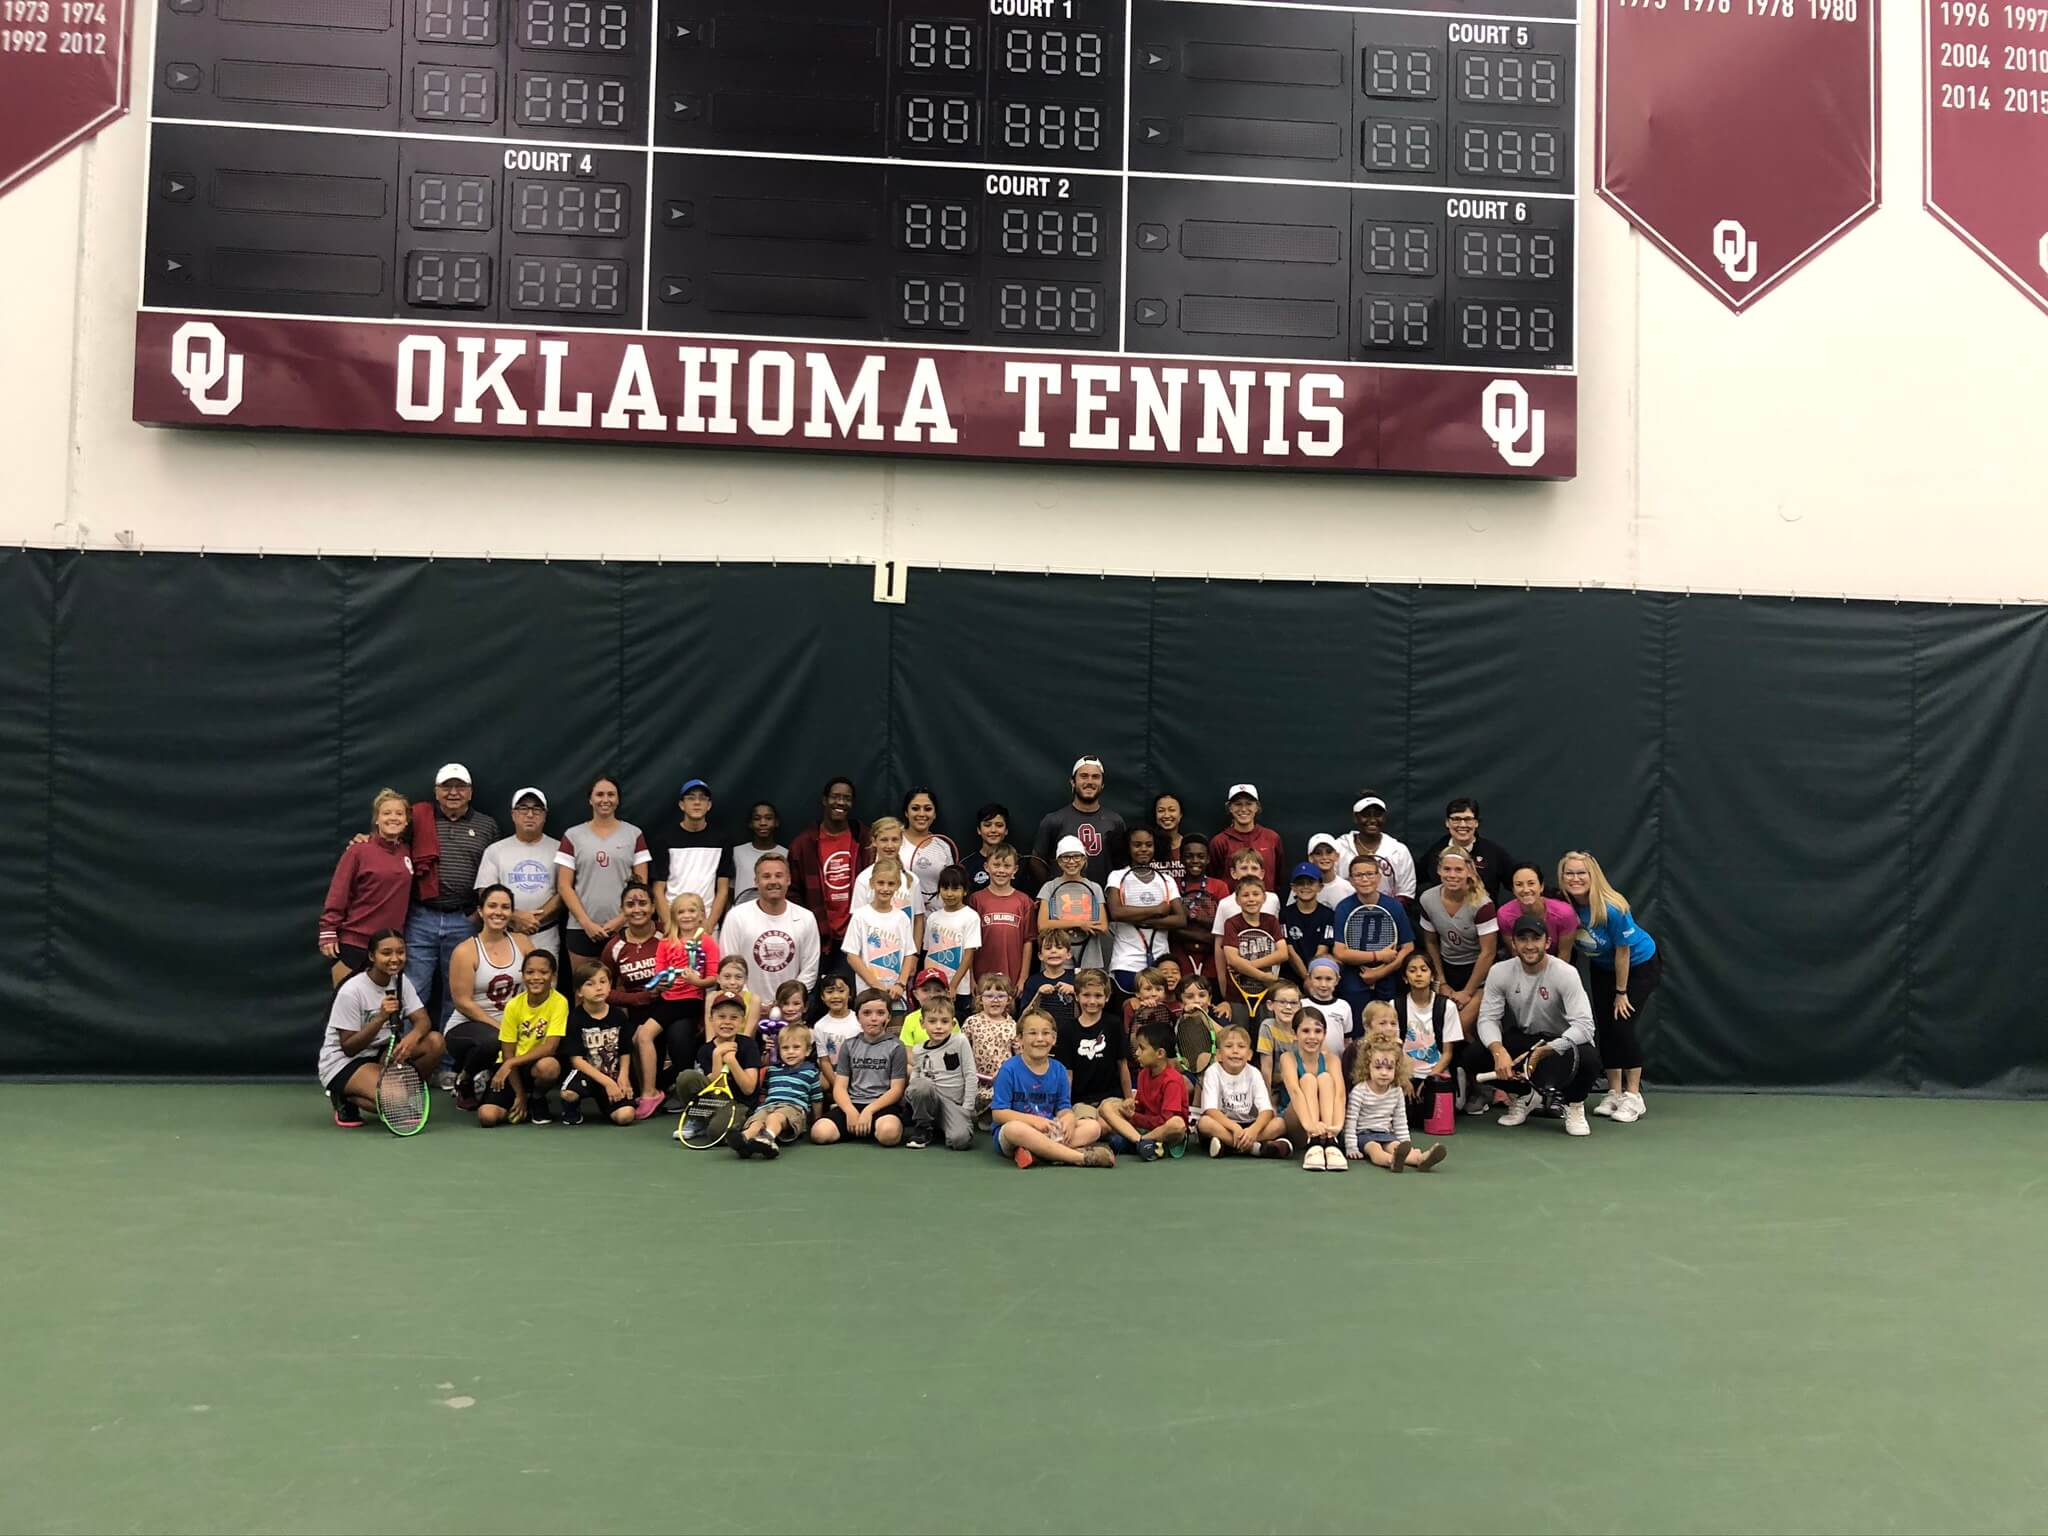 2019 Oklahoma Tennis Hall of Fame Clinic in Norman, OK Cleveland County